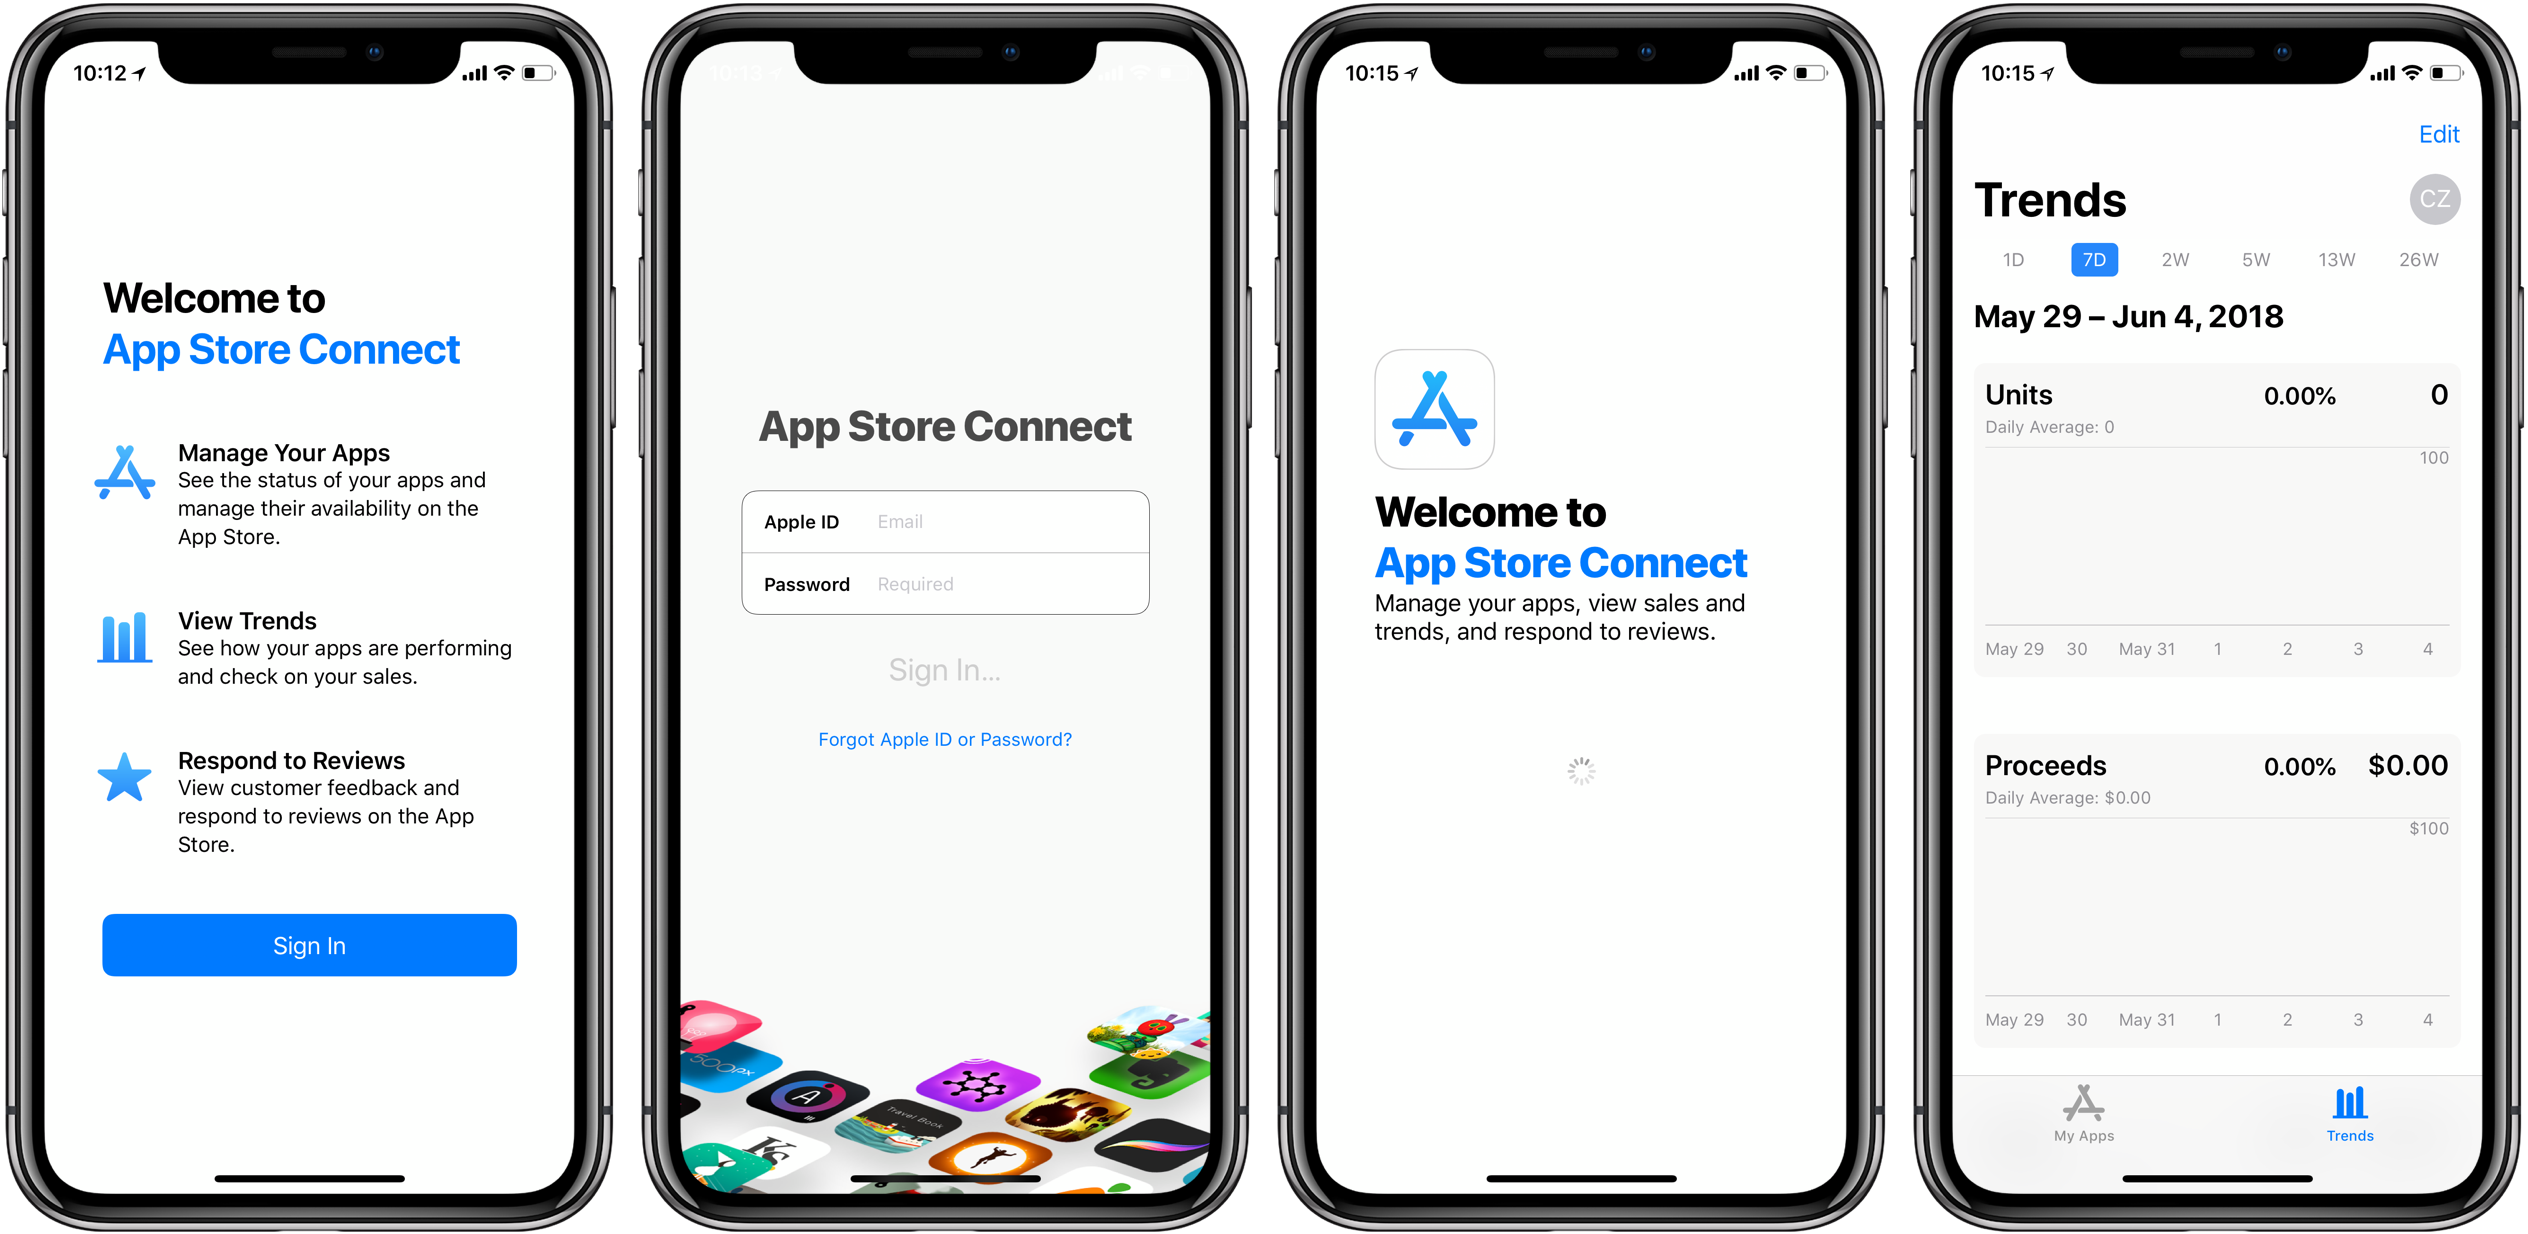 iTunes Connect developers can now use the new App Store Connect app to see sales trends and respond to customer reviews